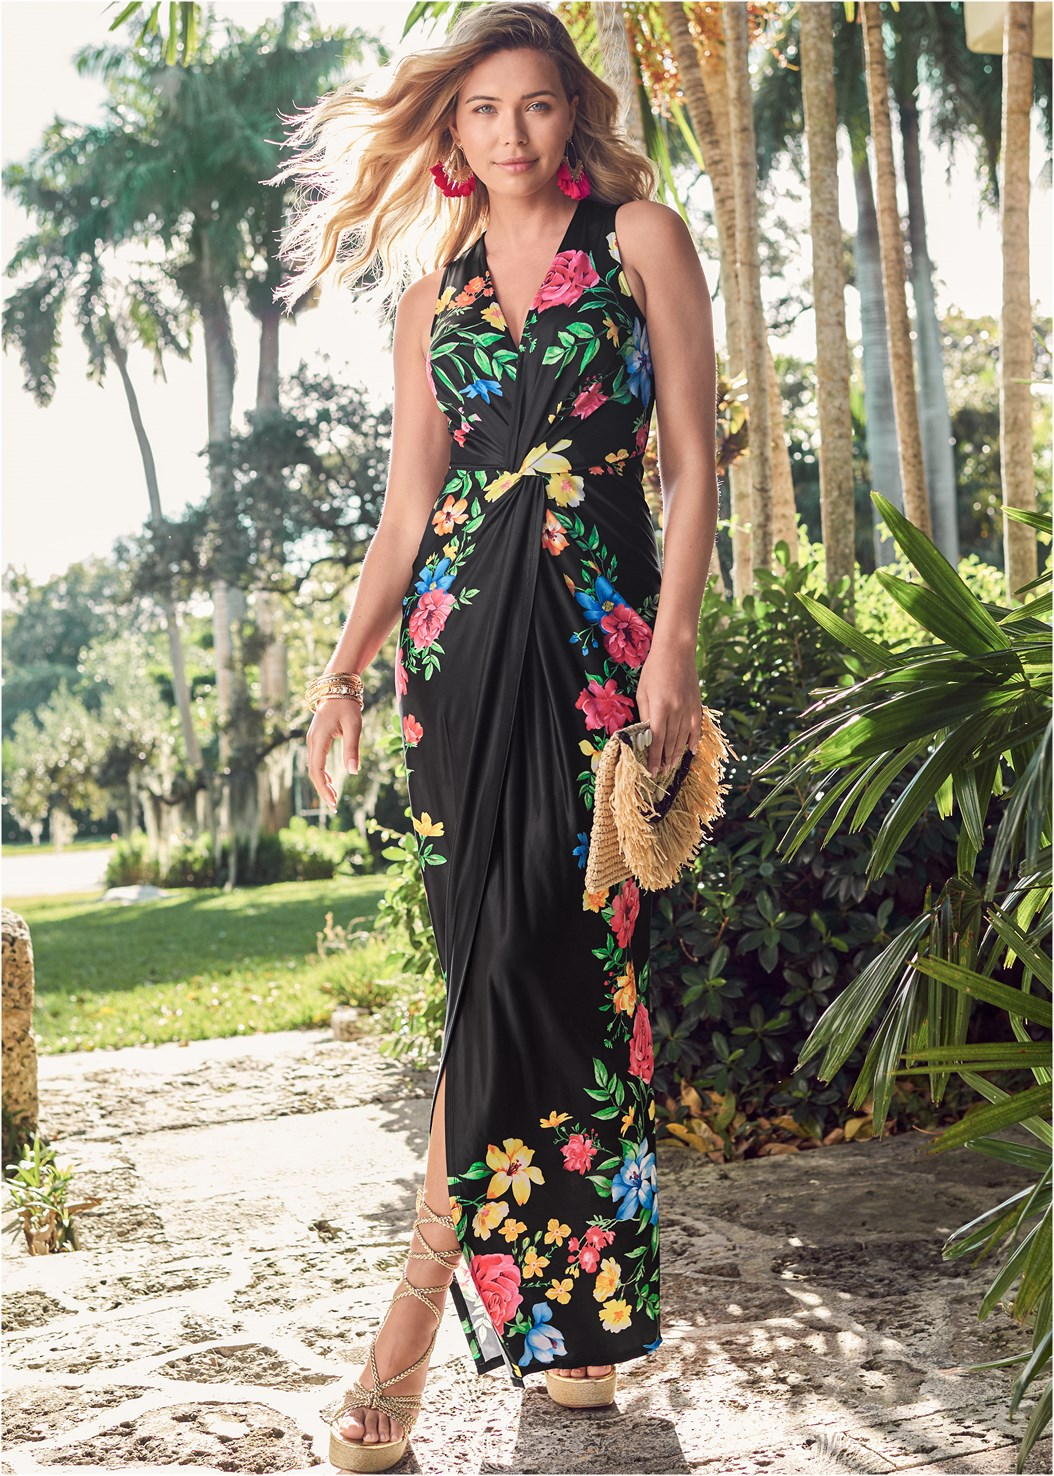 Twist Front Floral Maxi Dress,Lace Up Espadrille Wedge,Wrap Around Wedges,Embellished Wedge,Raffia Tassel Shell Clutch